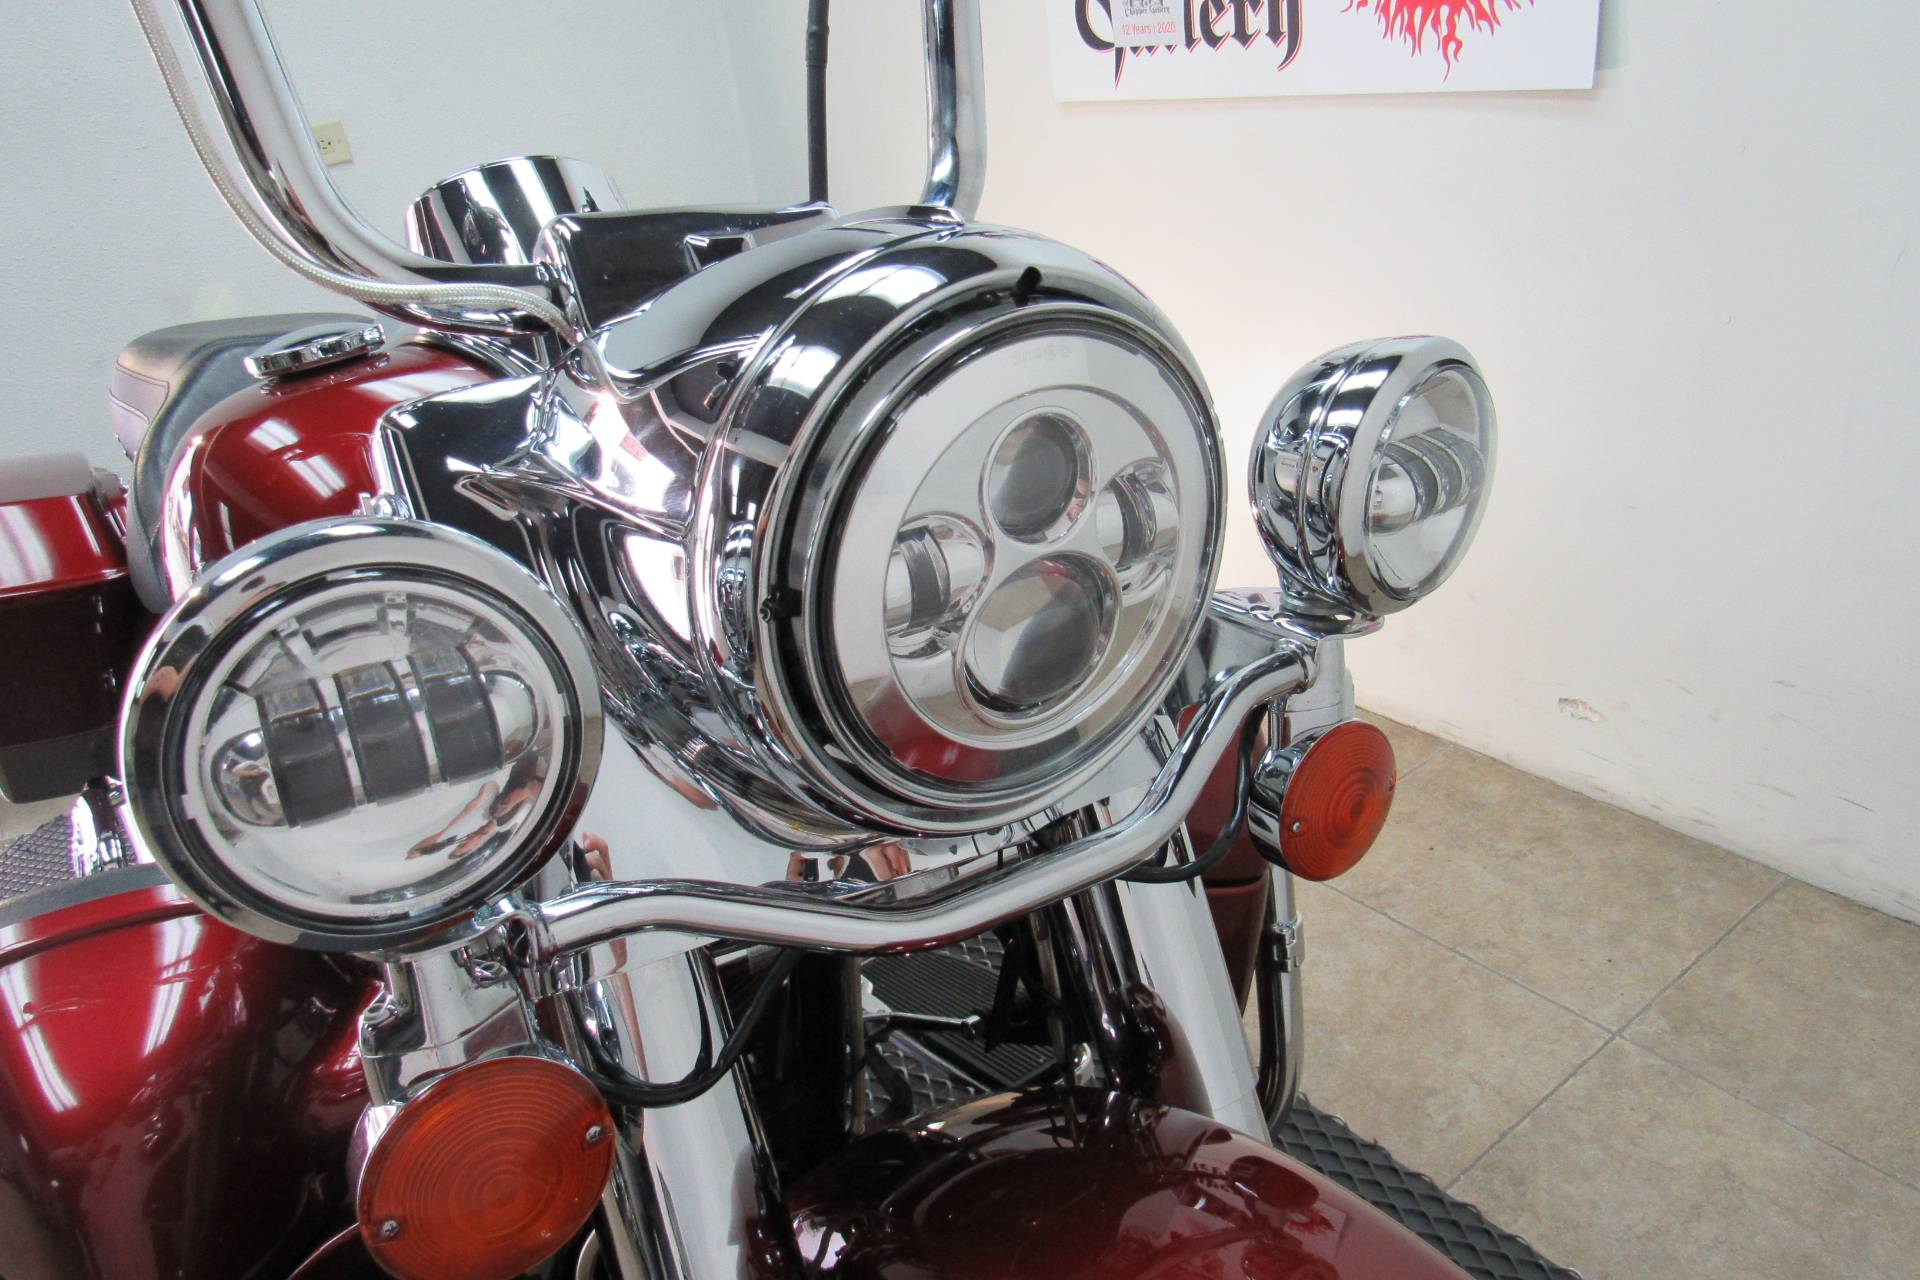 2009 Harley-Davidson Road King® in Temecula, California - Photo 13